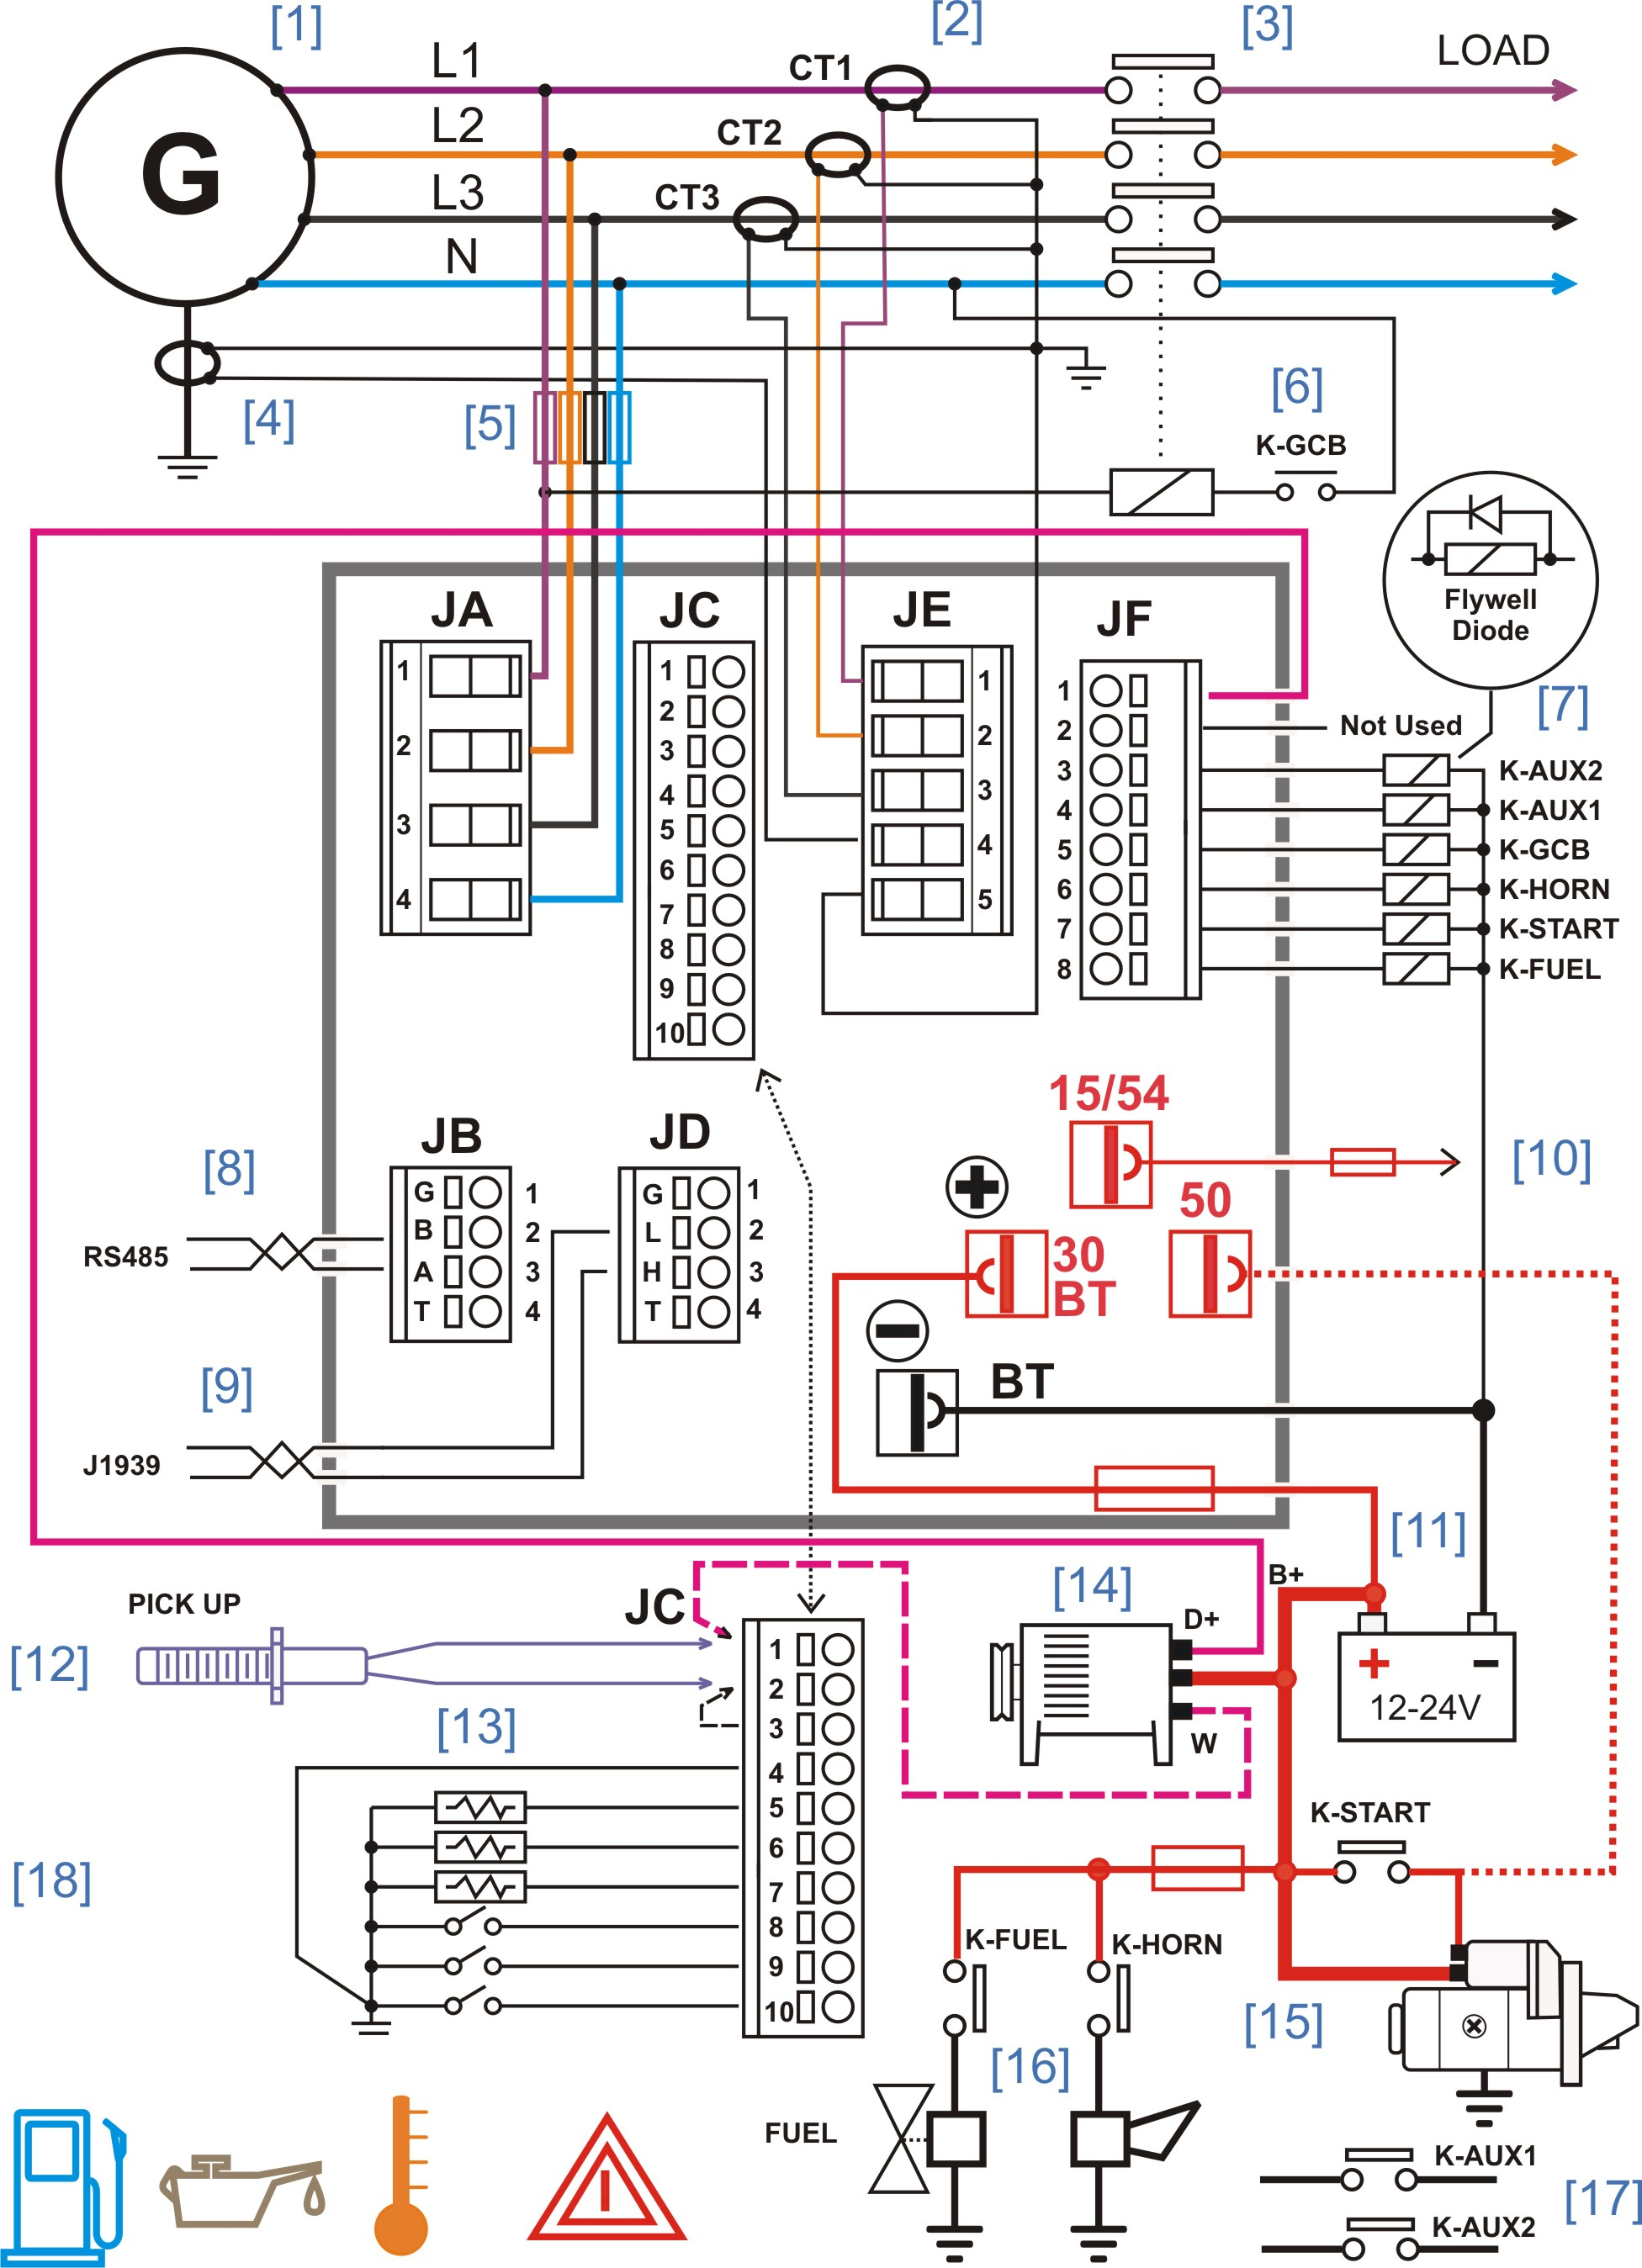 Wiring Diagram Maker | Wiring Diagram - Wiring Diagram Software